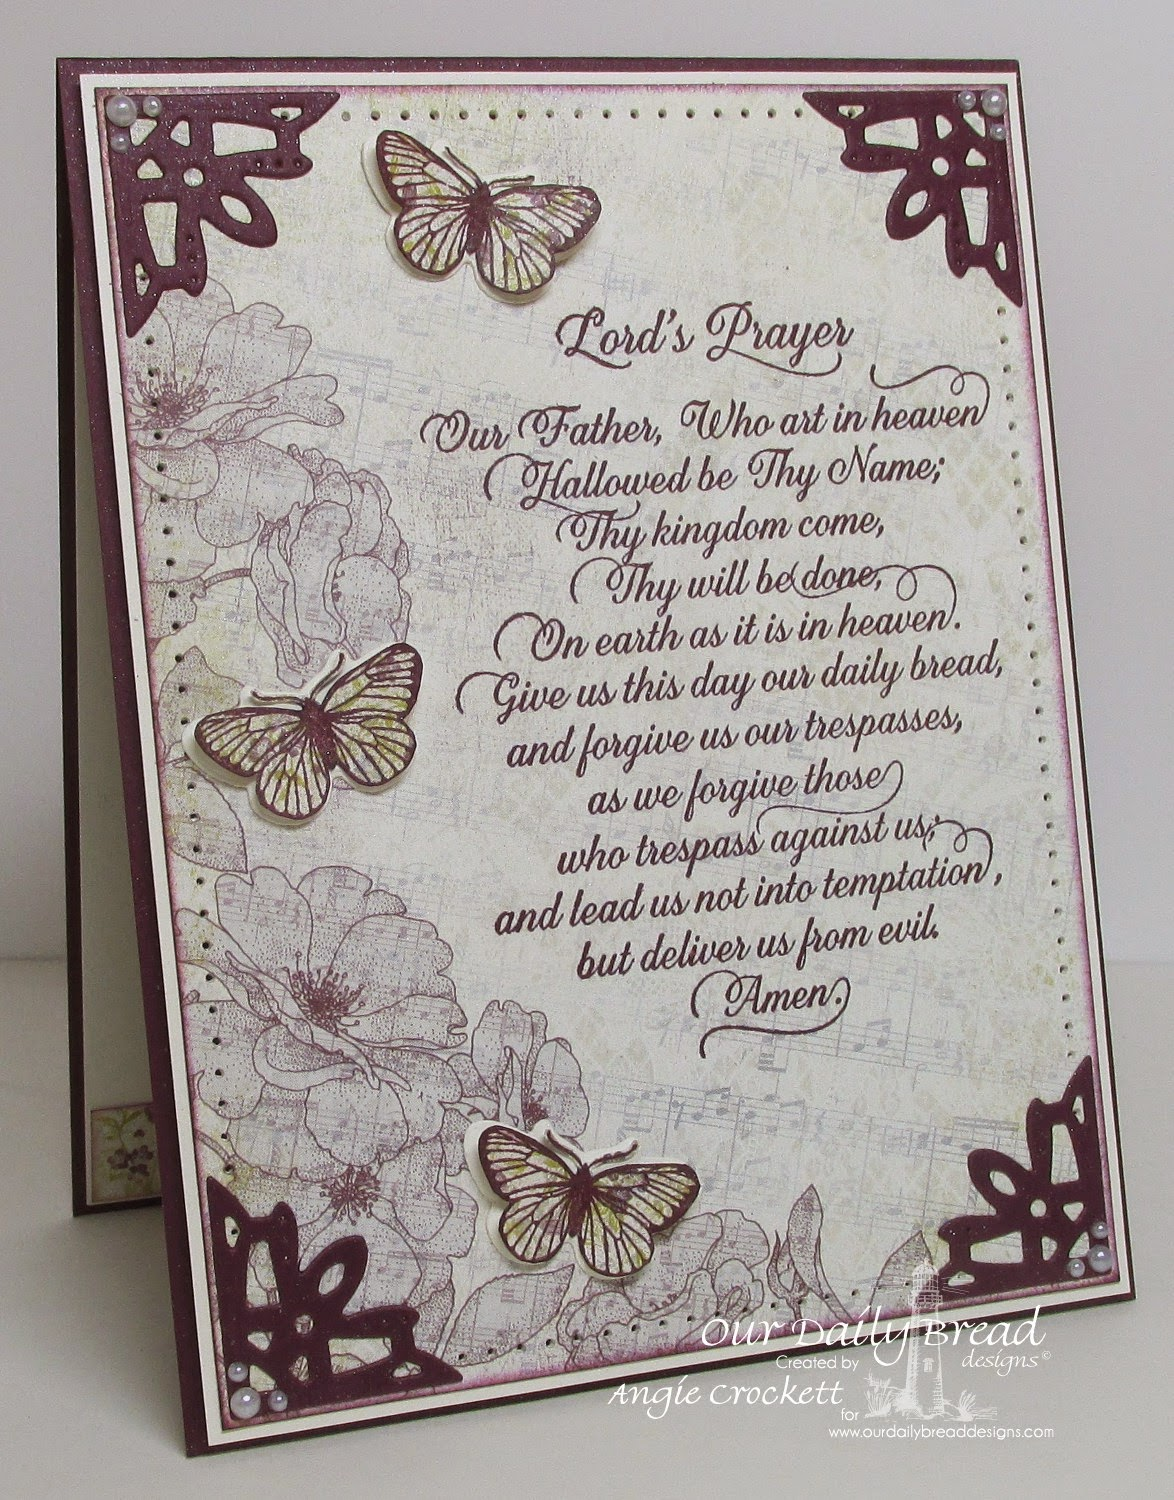 ODBD Lord's Prayer Script, ODBD Butterfly and Bugs, ODBD Custom Butterfly and Bugs Dies, ODBD Custom Ornate Borders and Flower Dies, Card Designer Angie Crockett